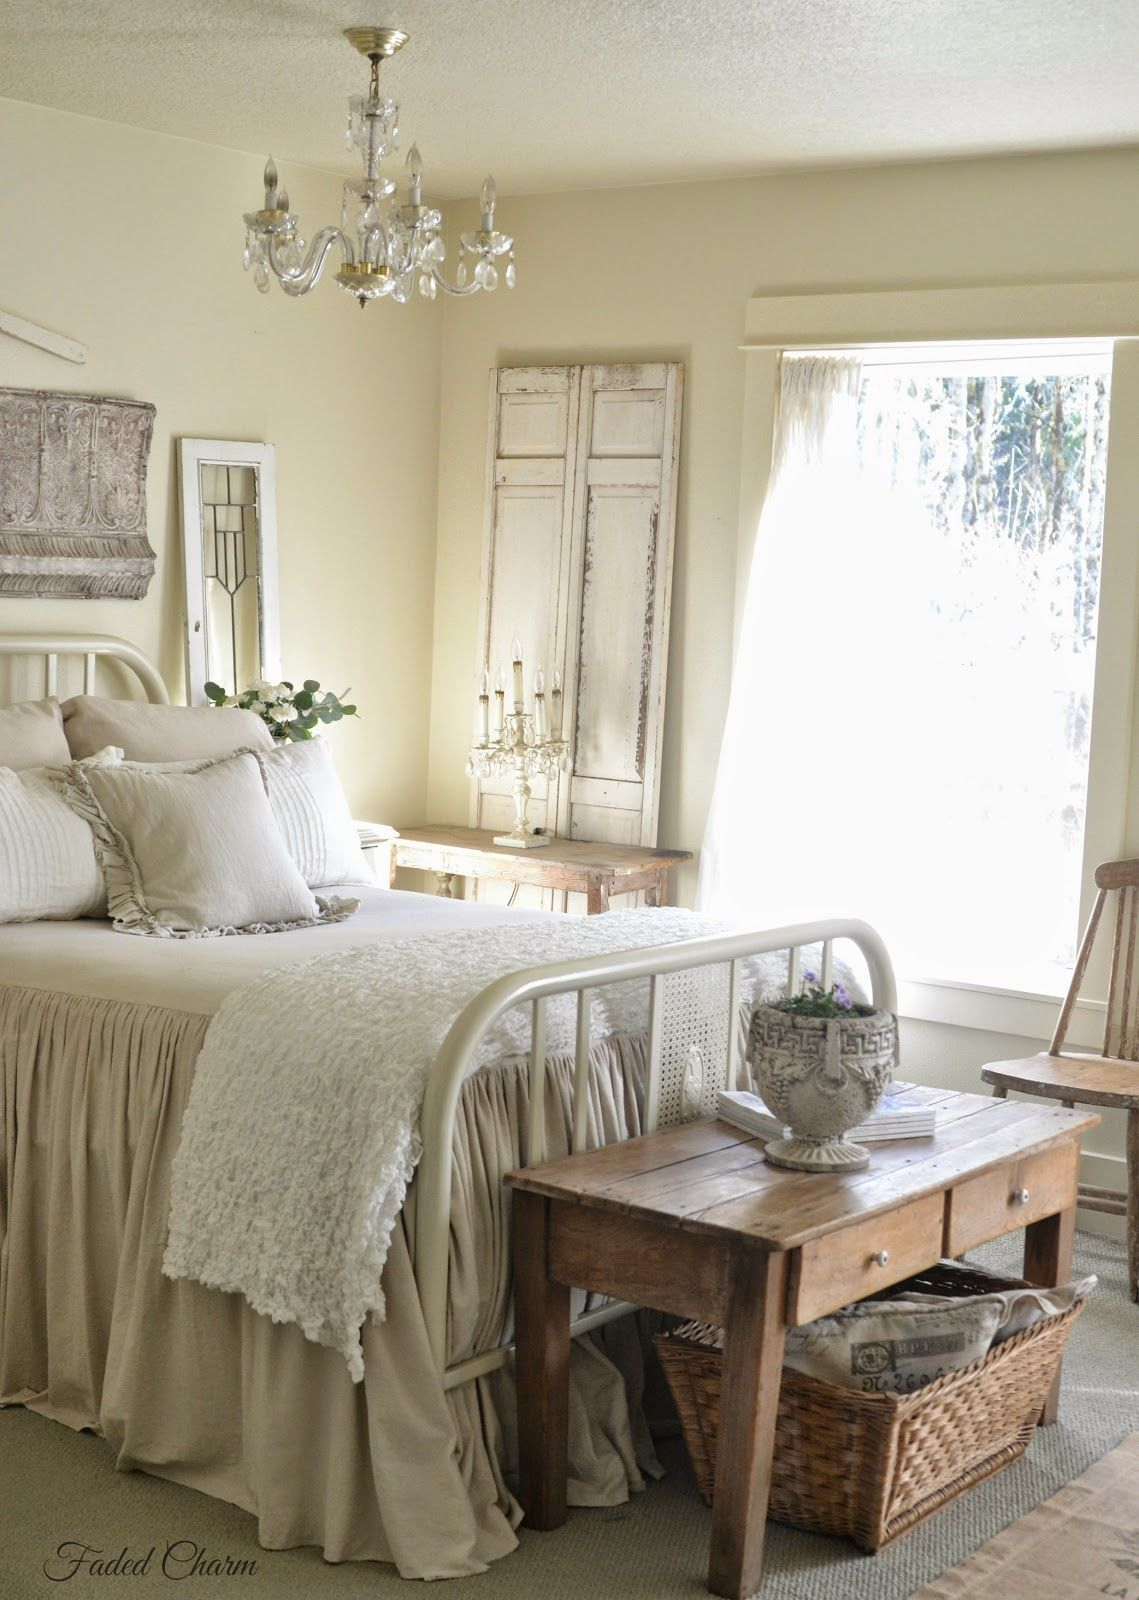 This Bedroom From Faded Charm Blog Has A Bedspread That Is So Inspiring Love The Color Of It Shabby Chic Decor Bedroom Shabby Chic Bedrooms Chic Bedroom